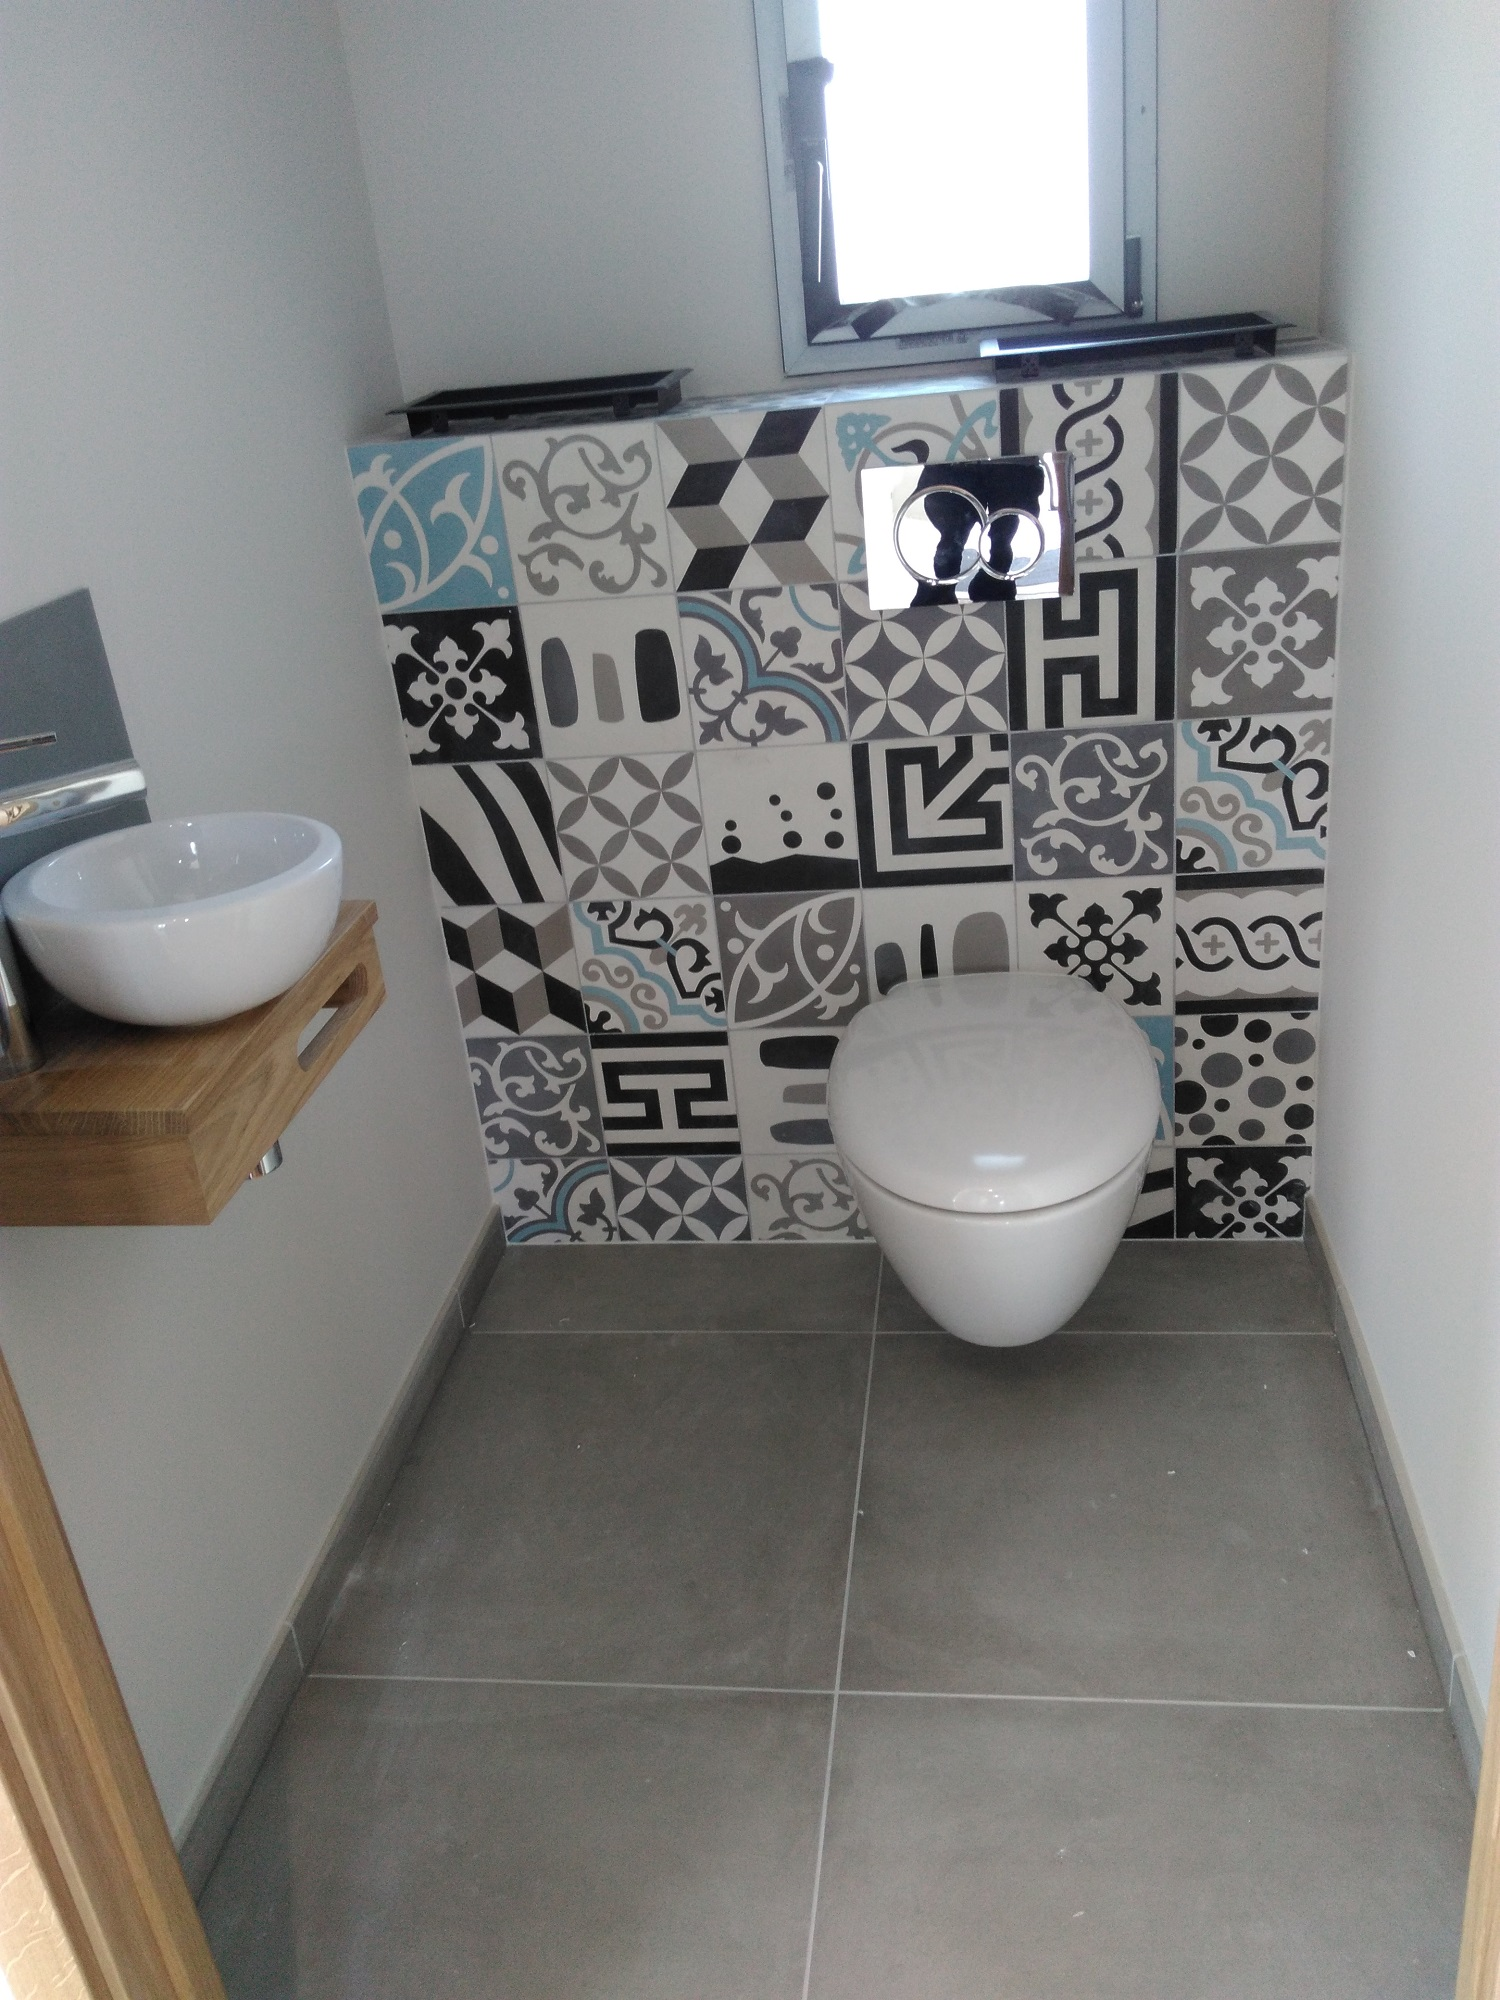 carreaux ciment toilettes stephane